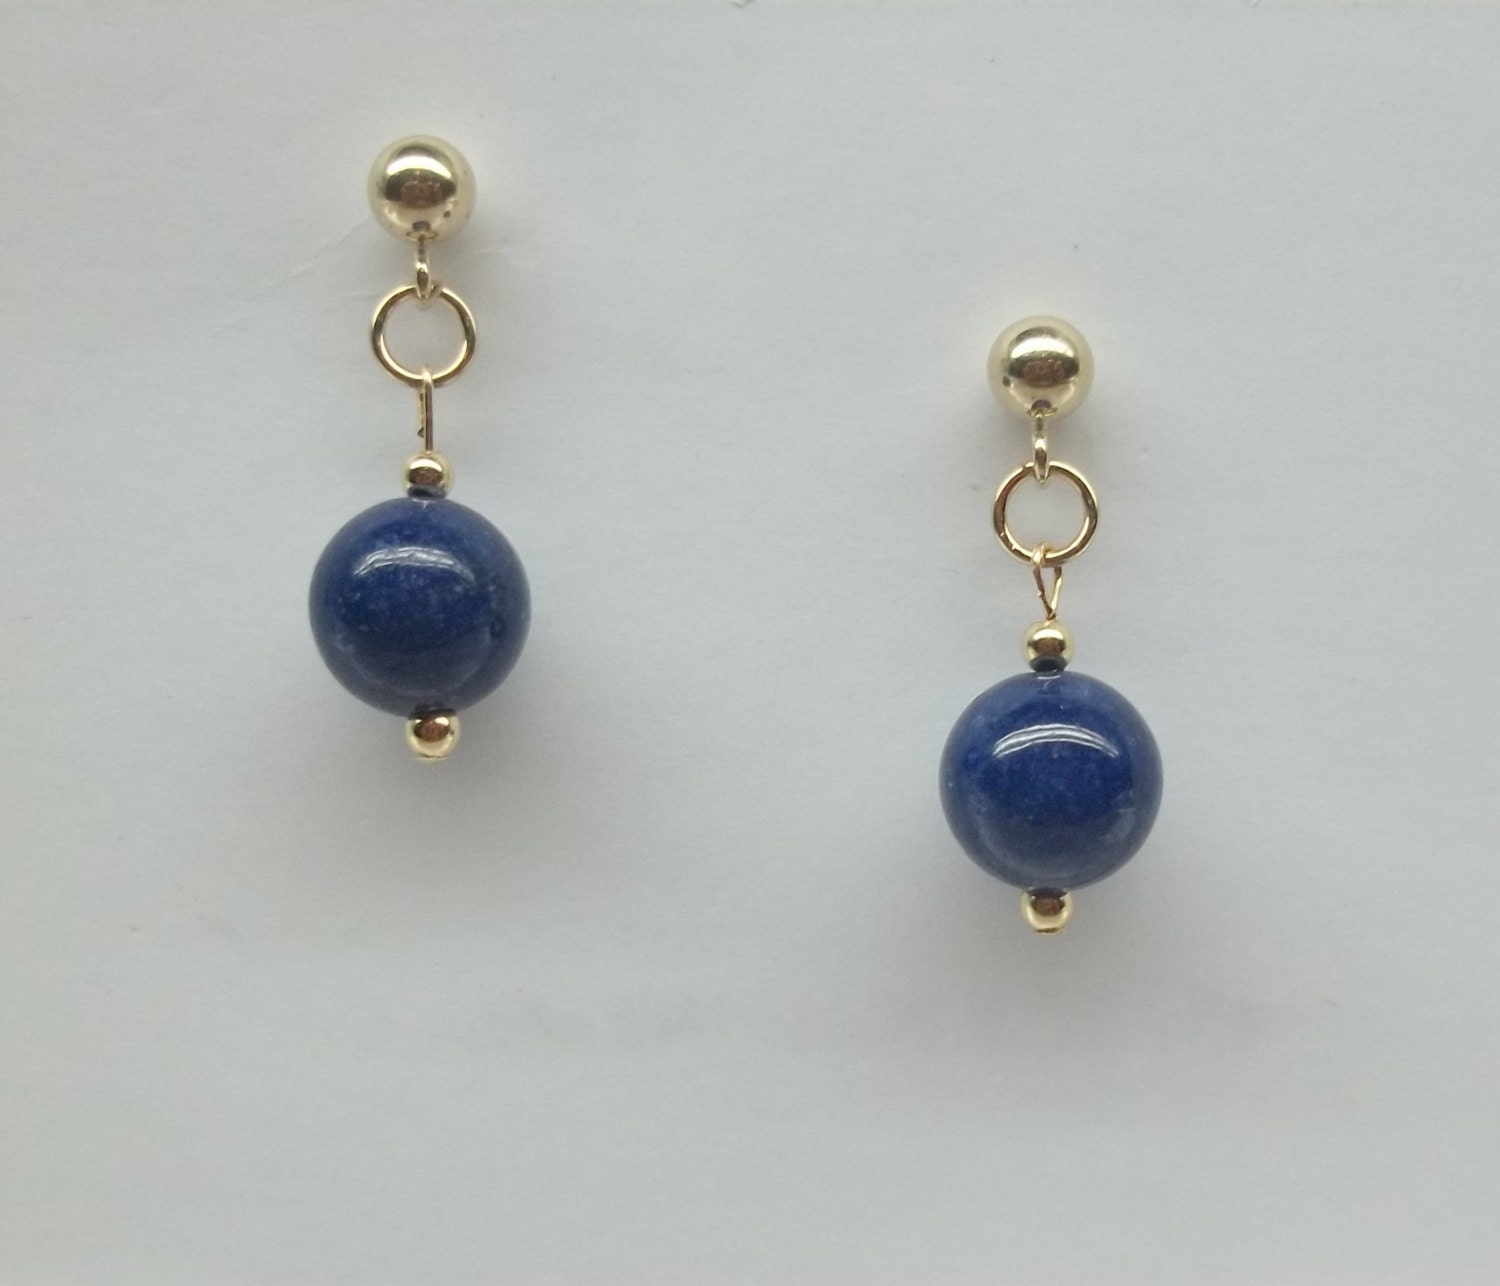 blue lapis earrings solid 14kt gold earrings blue lapis lazuli